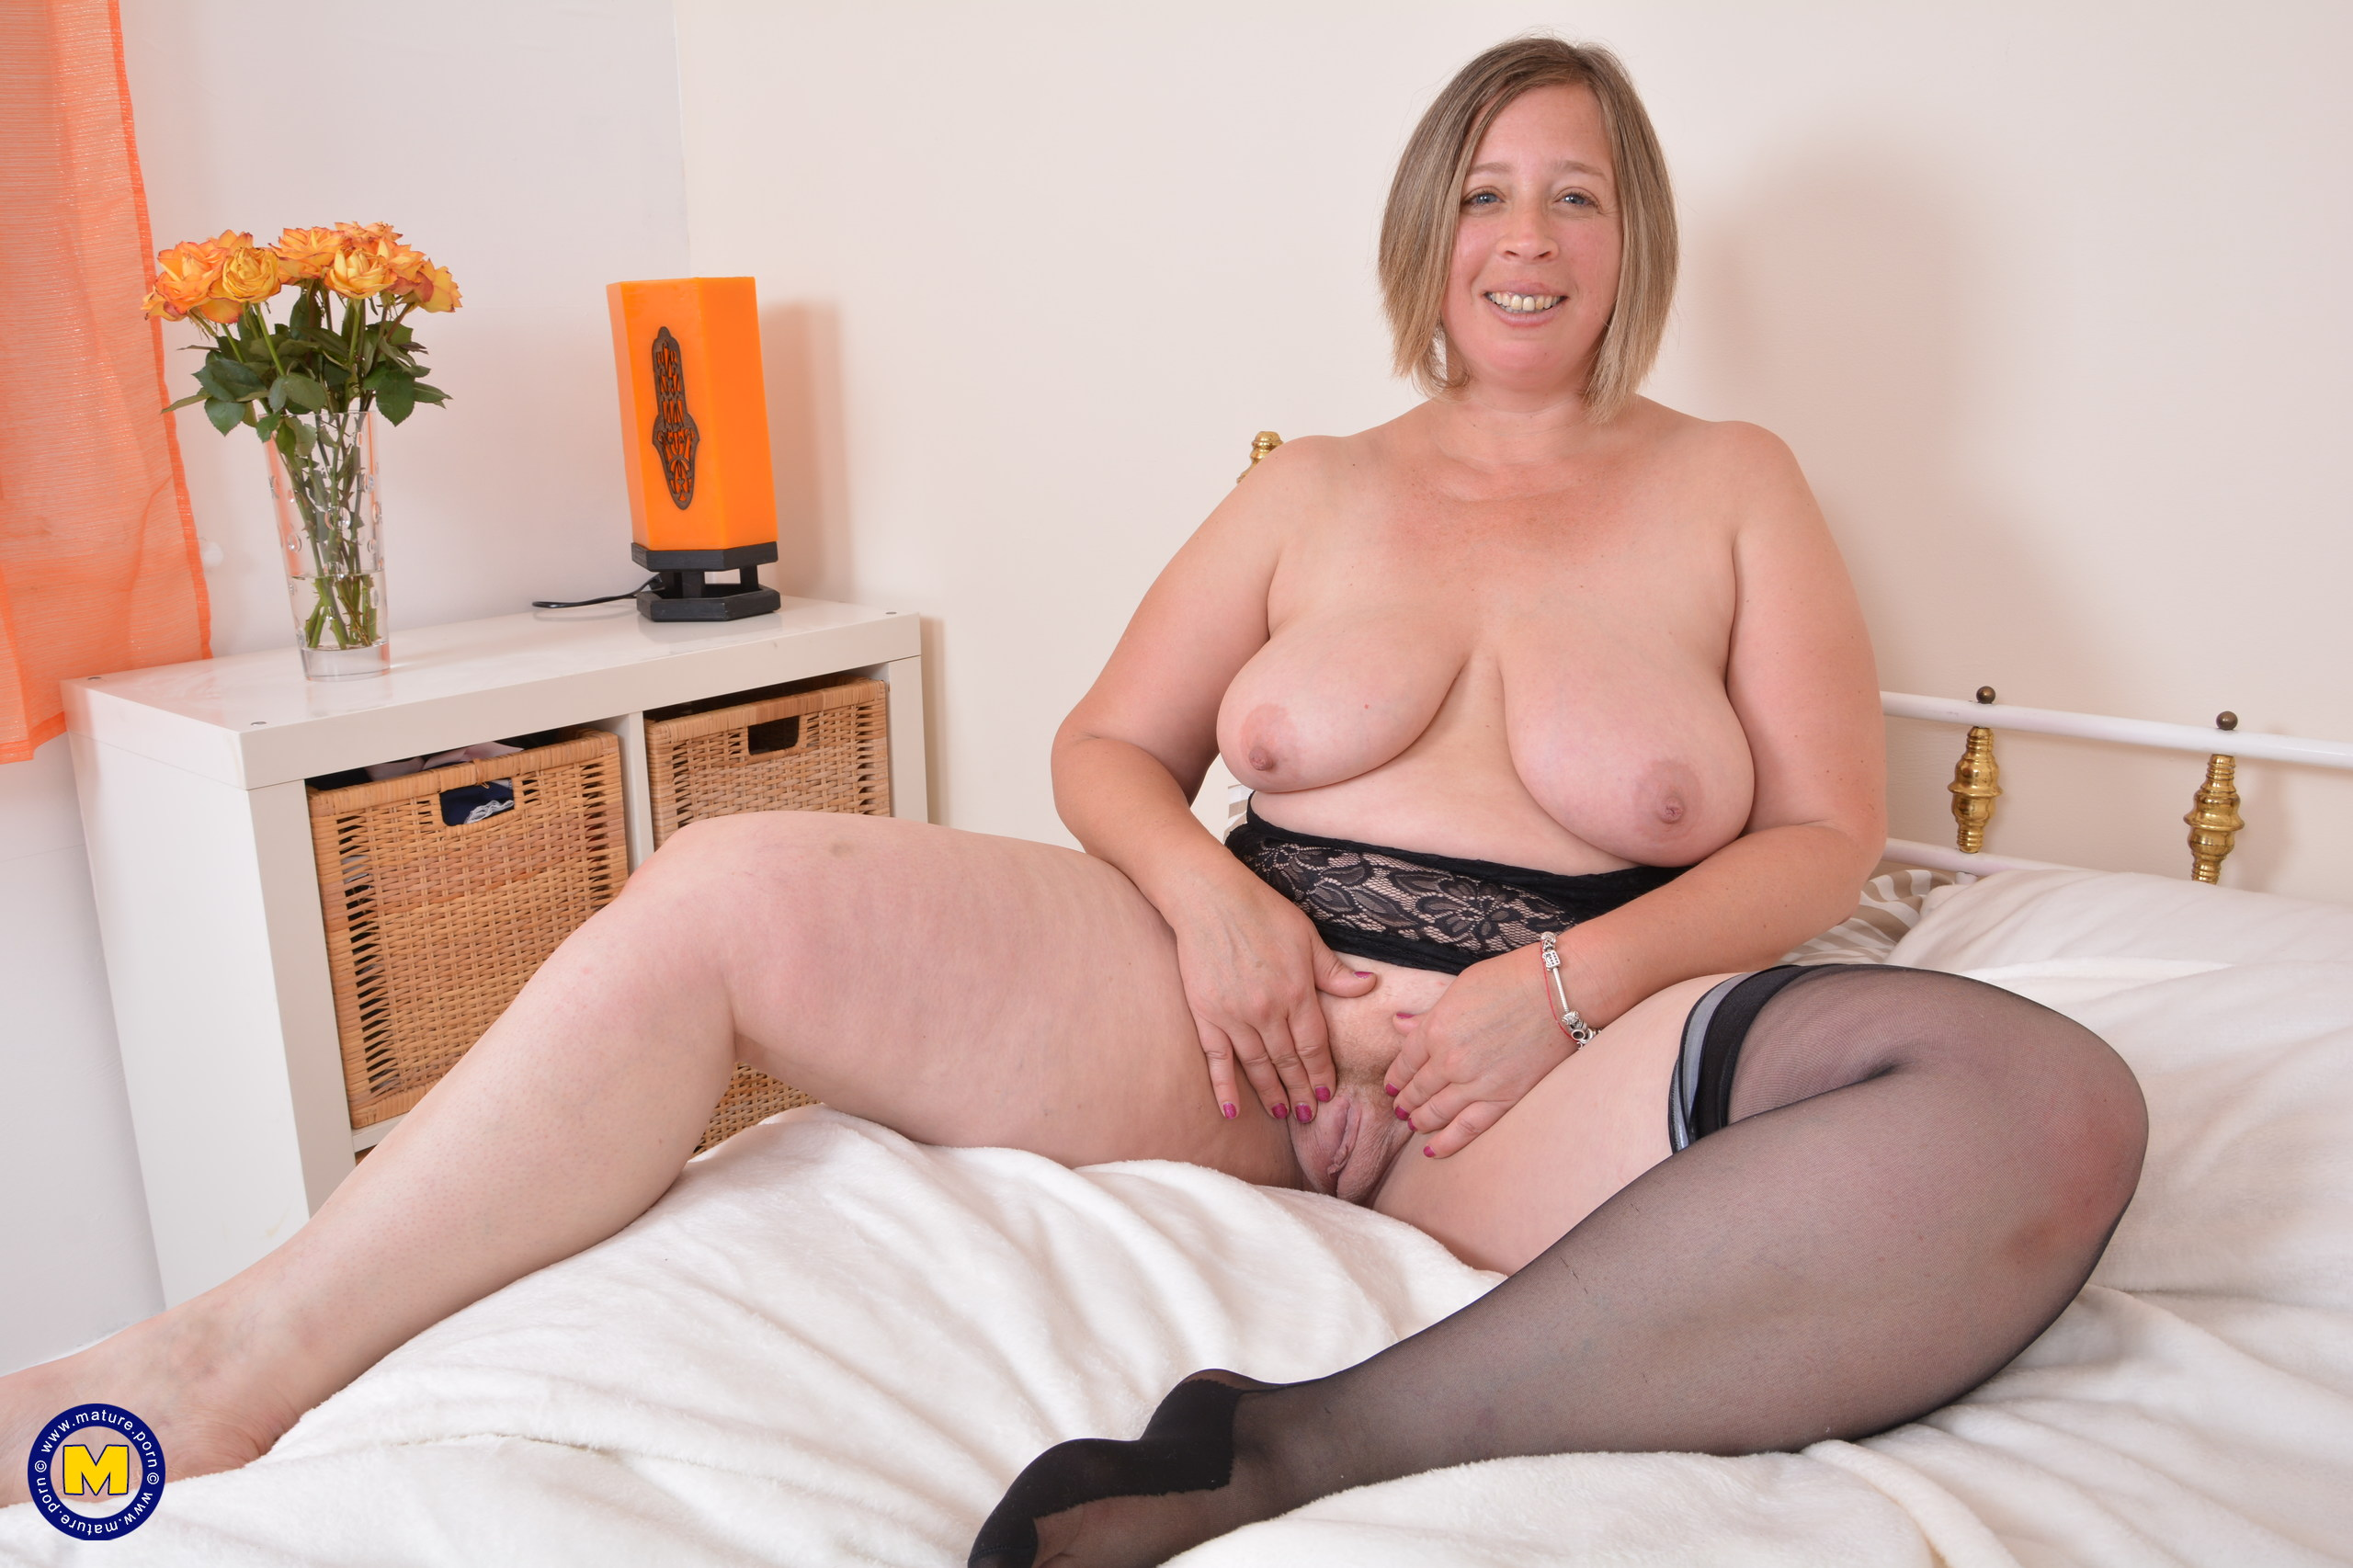 Mature Nude Housewifes